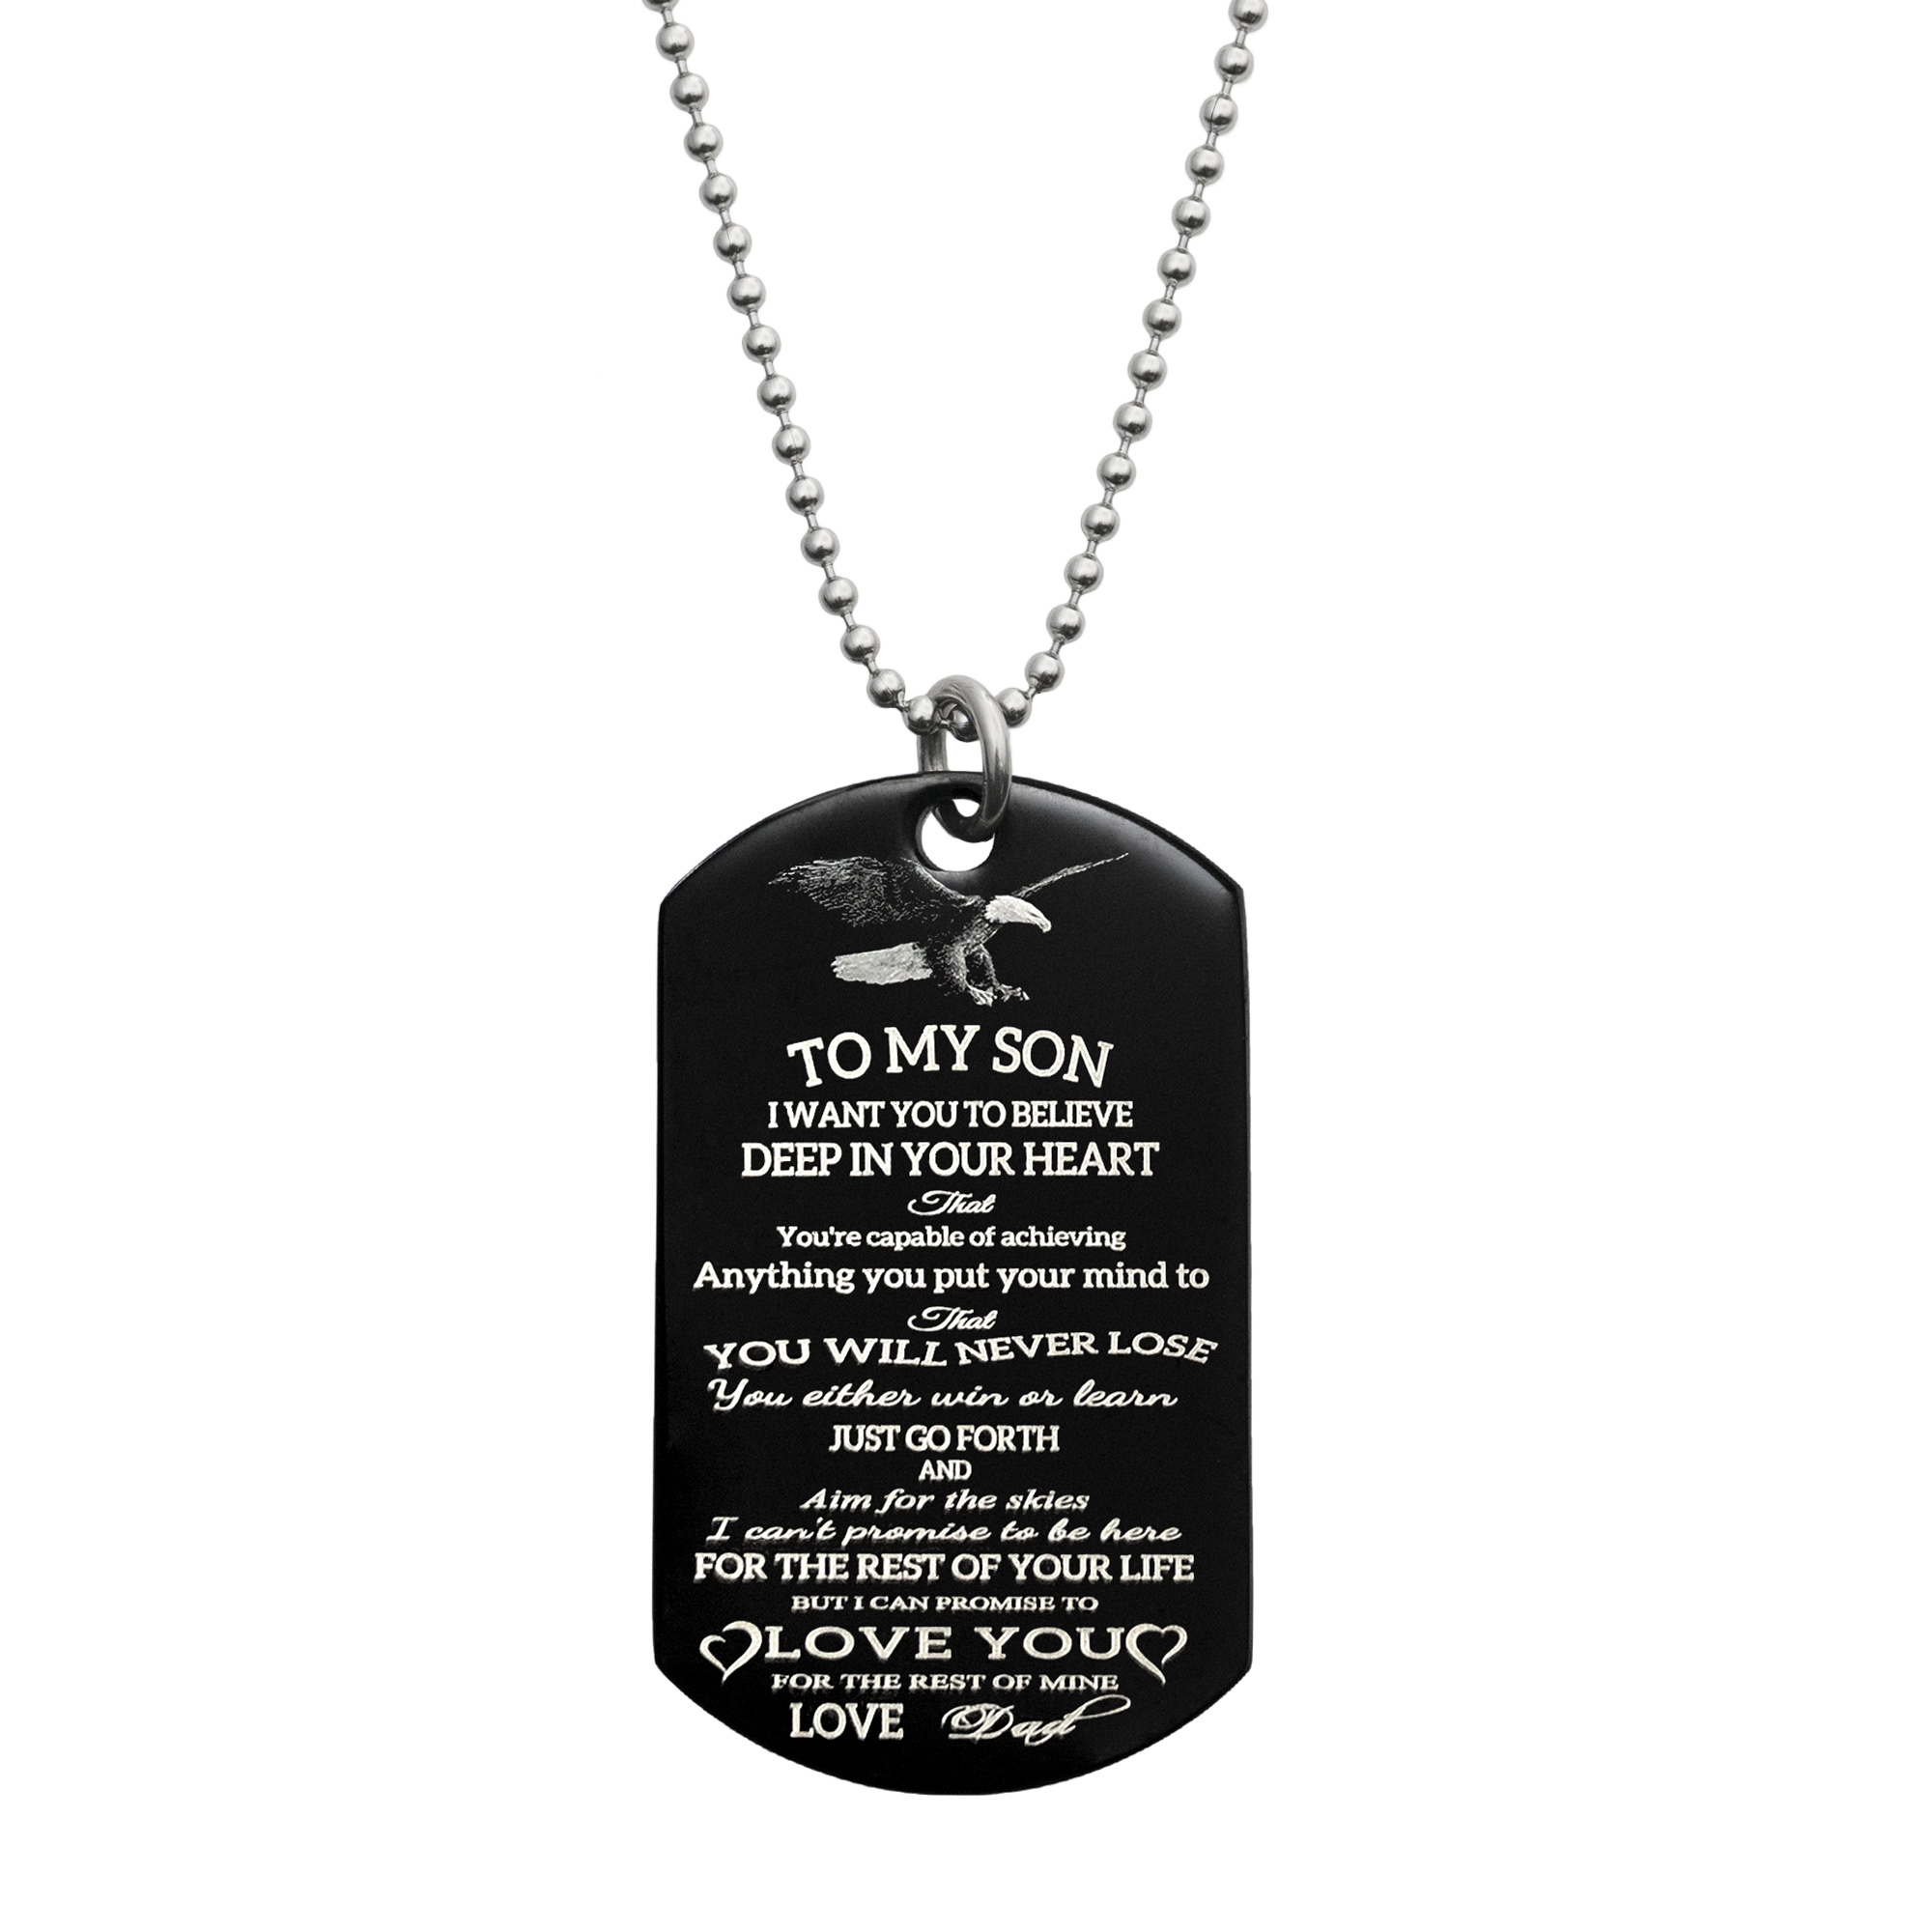 To My Son Fr Dad Love Note Personalized Text Engraved Stainless Steel Custom Dog Tag Military Pendant, 24\'\' Necklace